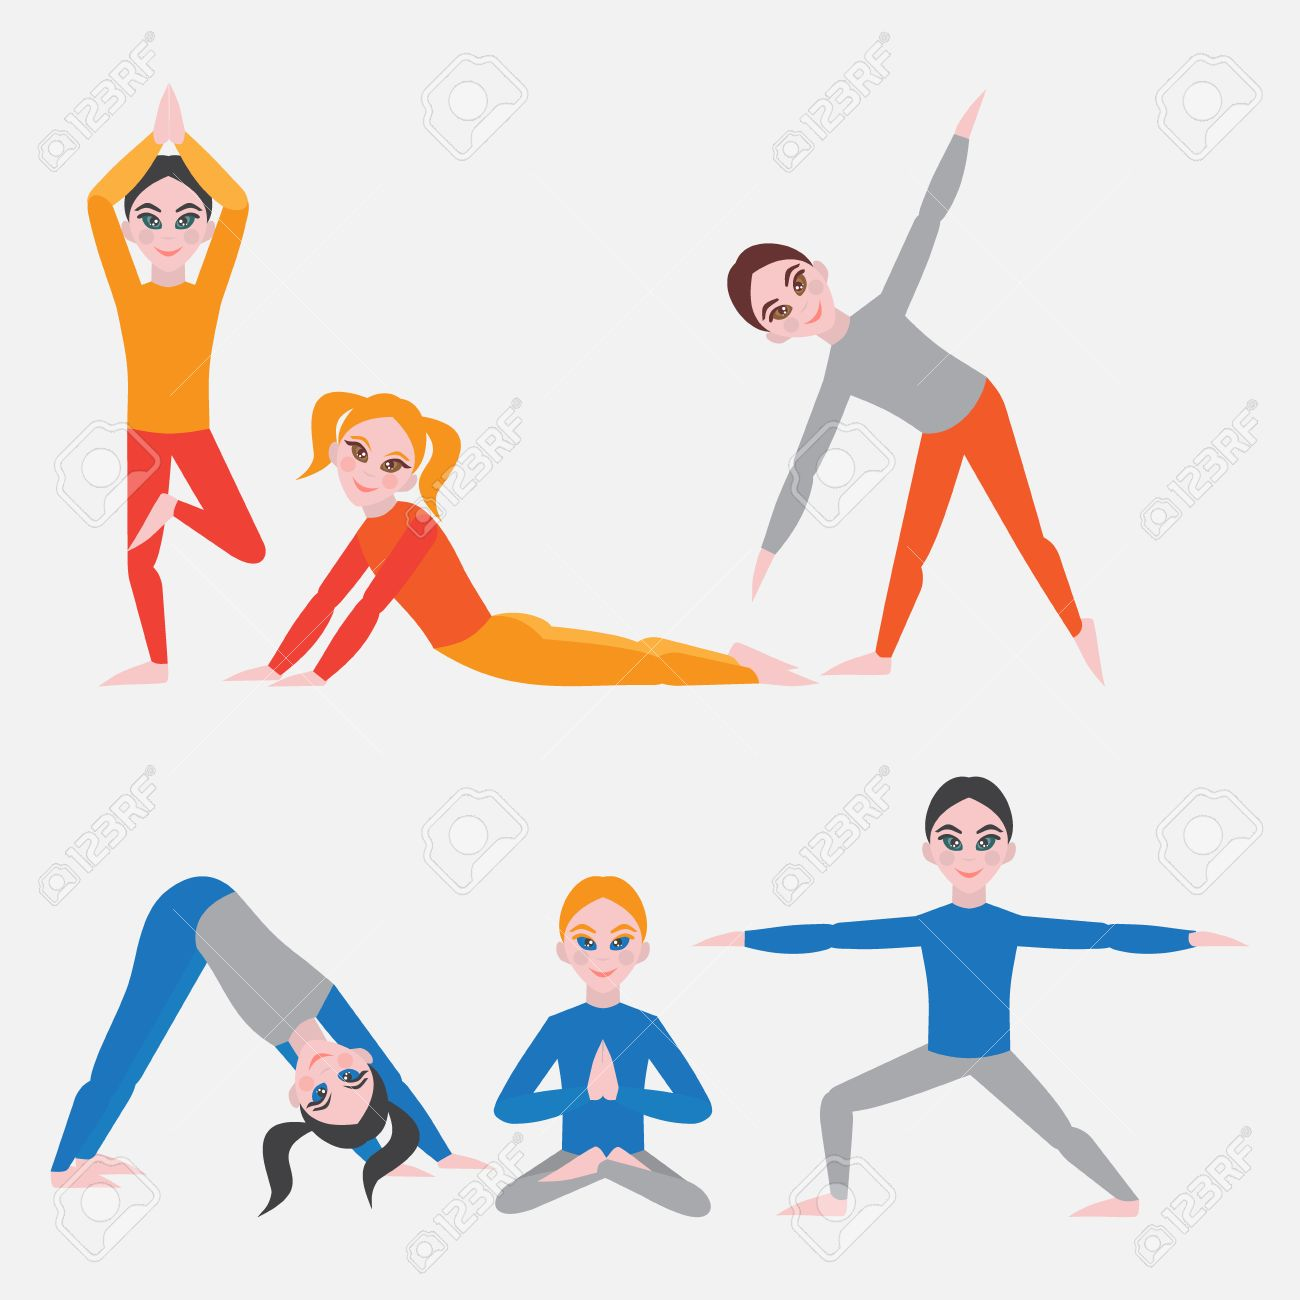 Yoga Kids Set Gymnastics For Children And Healthy Lifestyle Royalty Free Cliparts Vectors And Stock Illustration Image 56501401